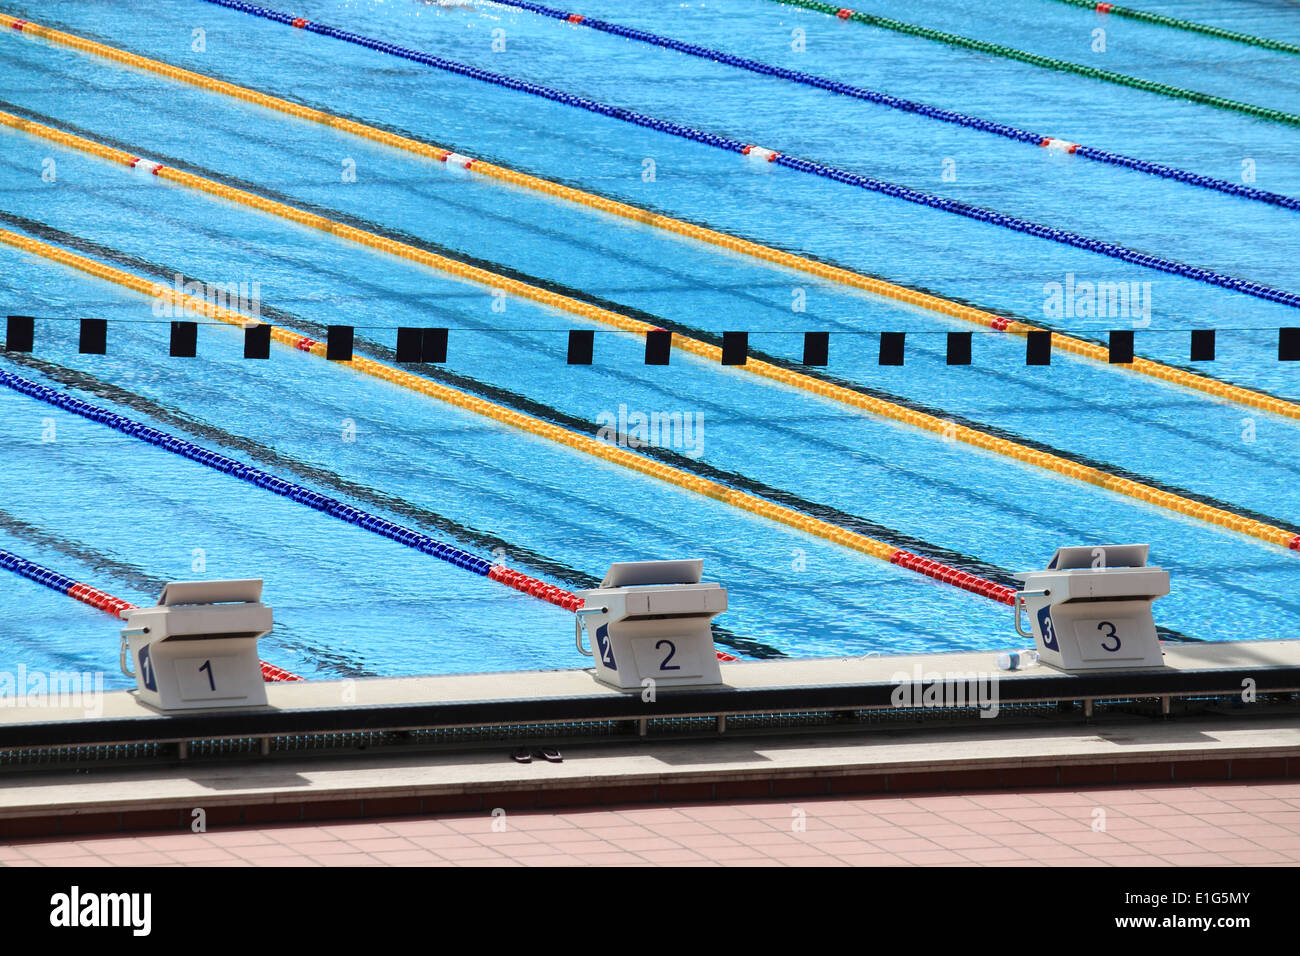 starting blocks in a olympic swimming pool - Olympic Swimming Starting Blocks